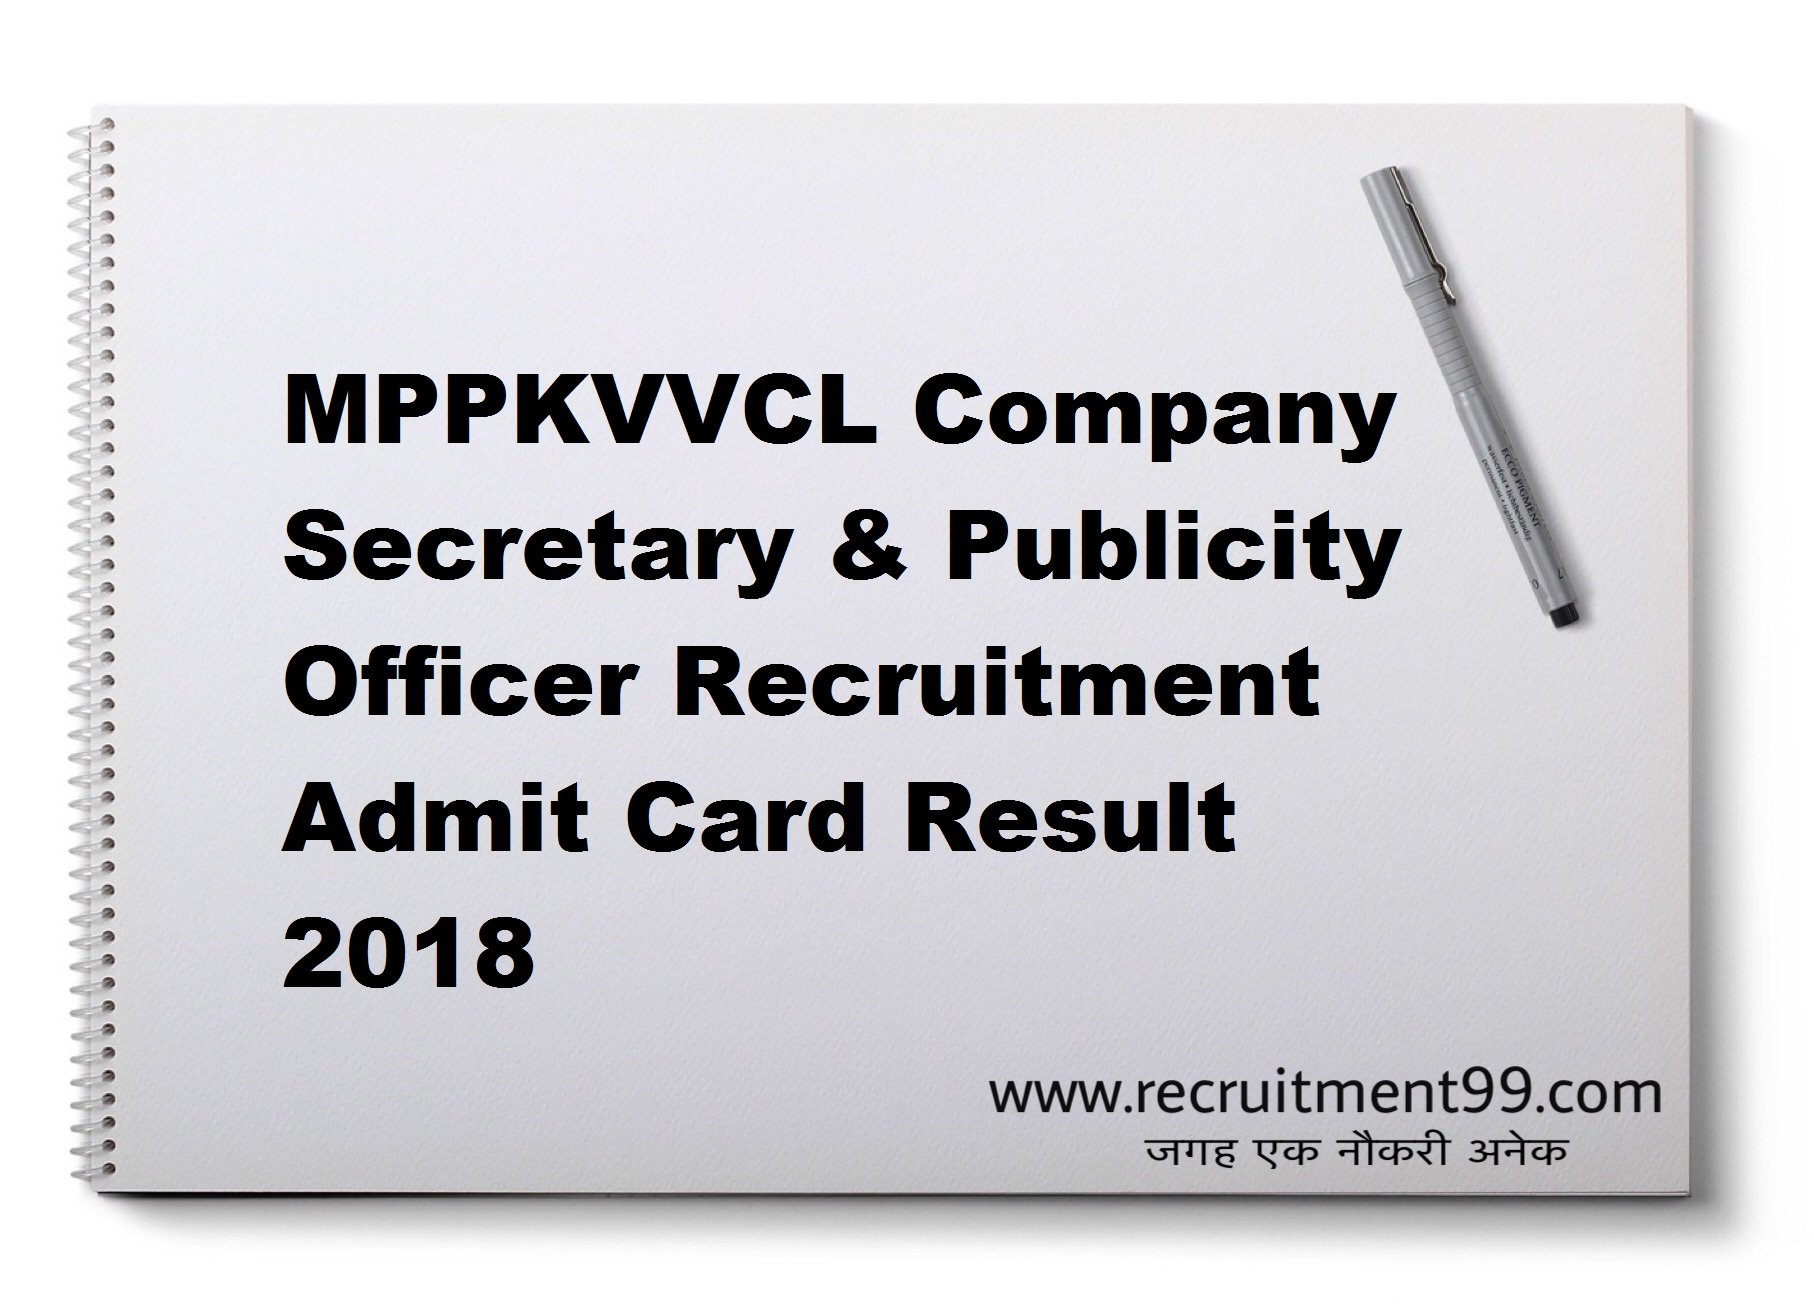 MPPKVVCL Company Secretary & Publicity Officer Recruitment Admit Card Result 2018